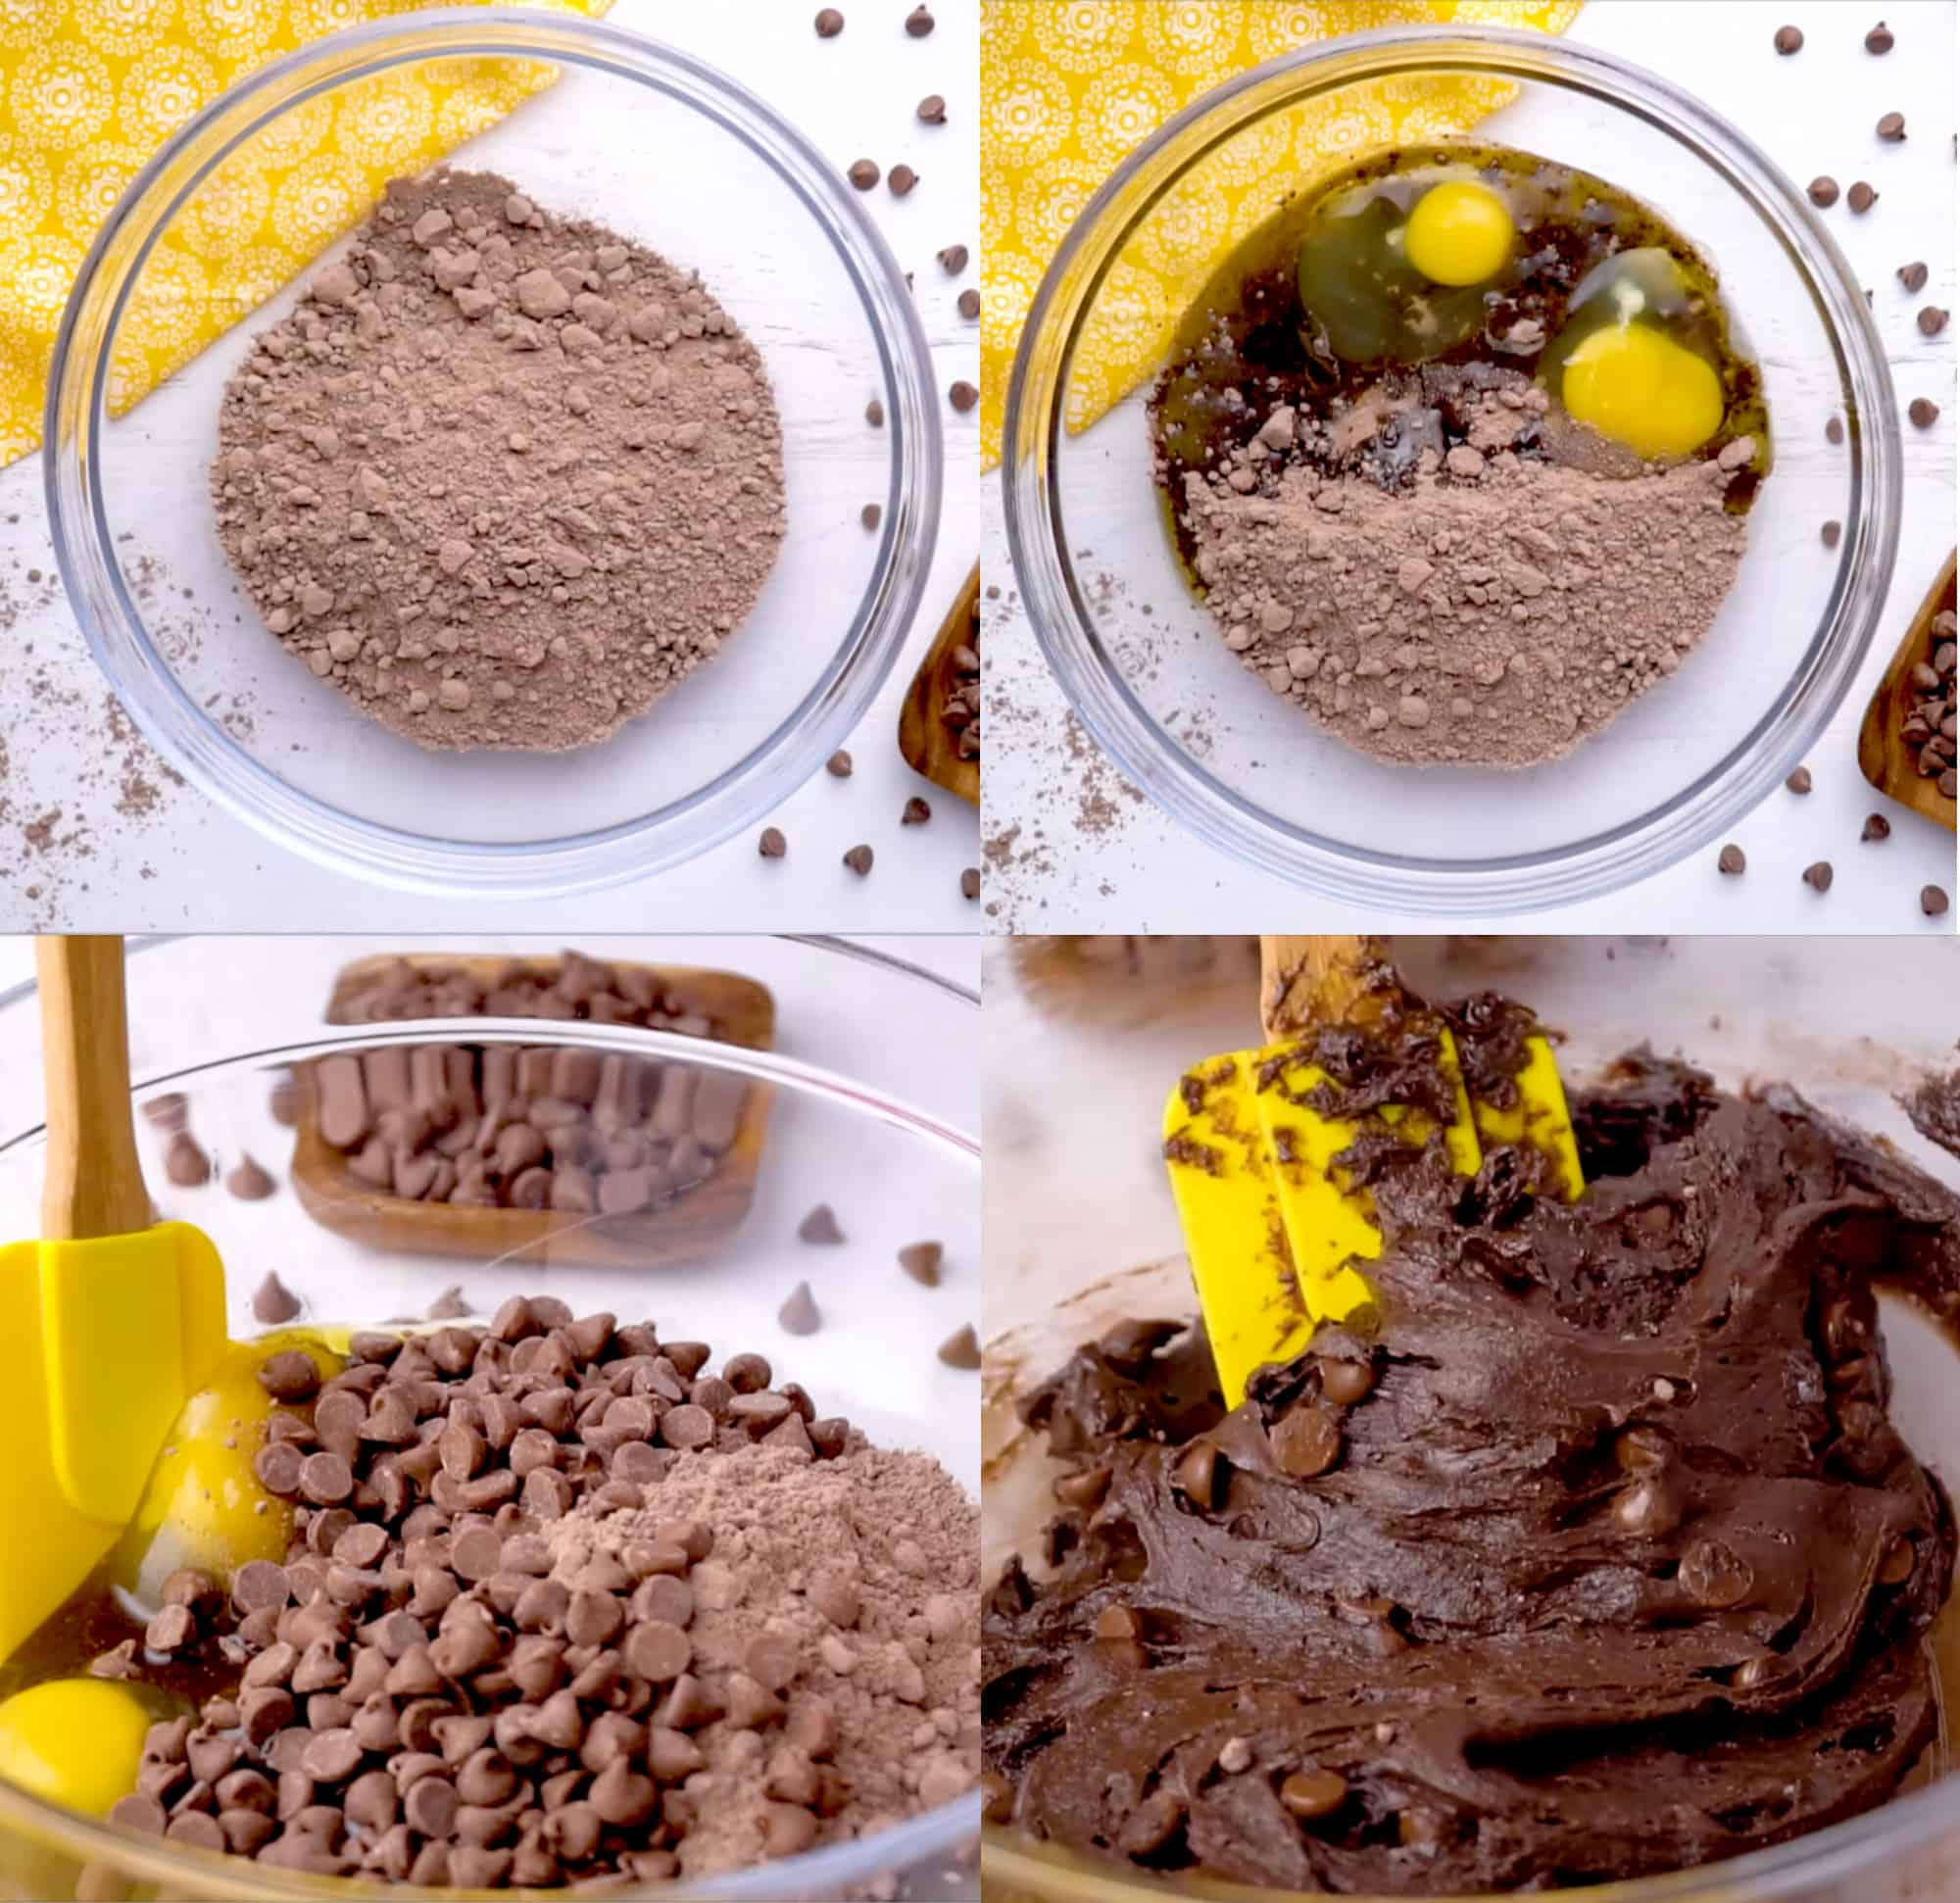 four images showing the progression of adding the ingredients and mixing them together